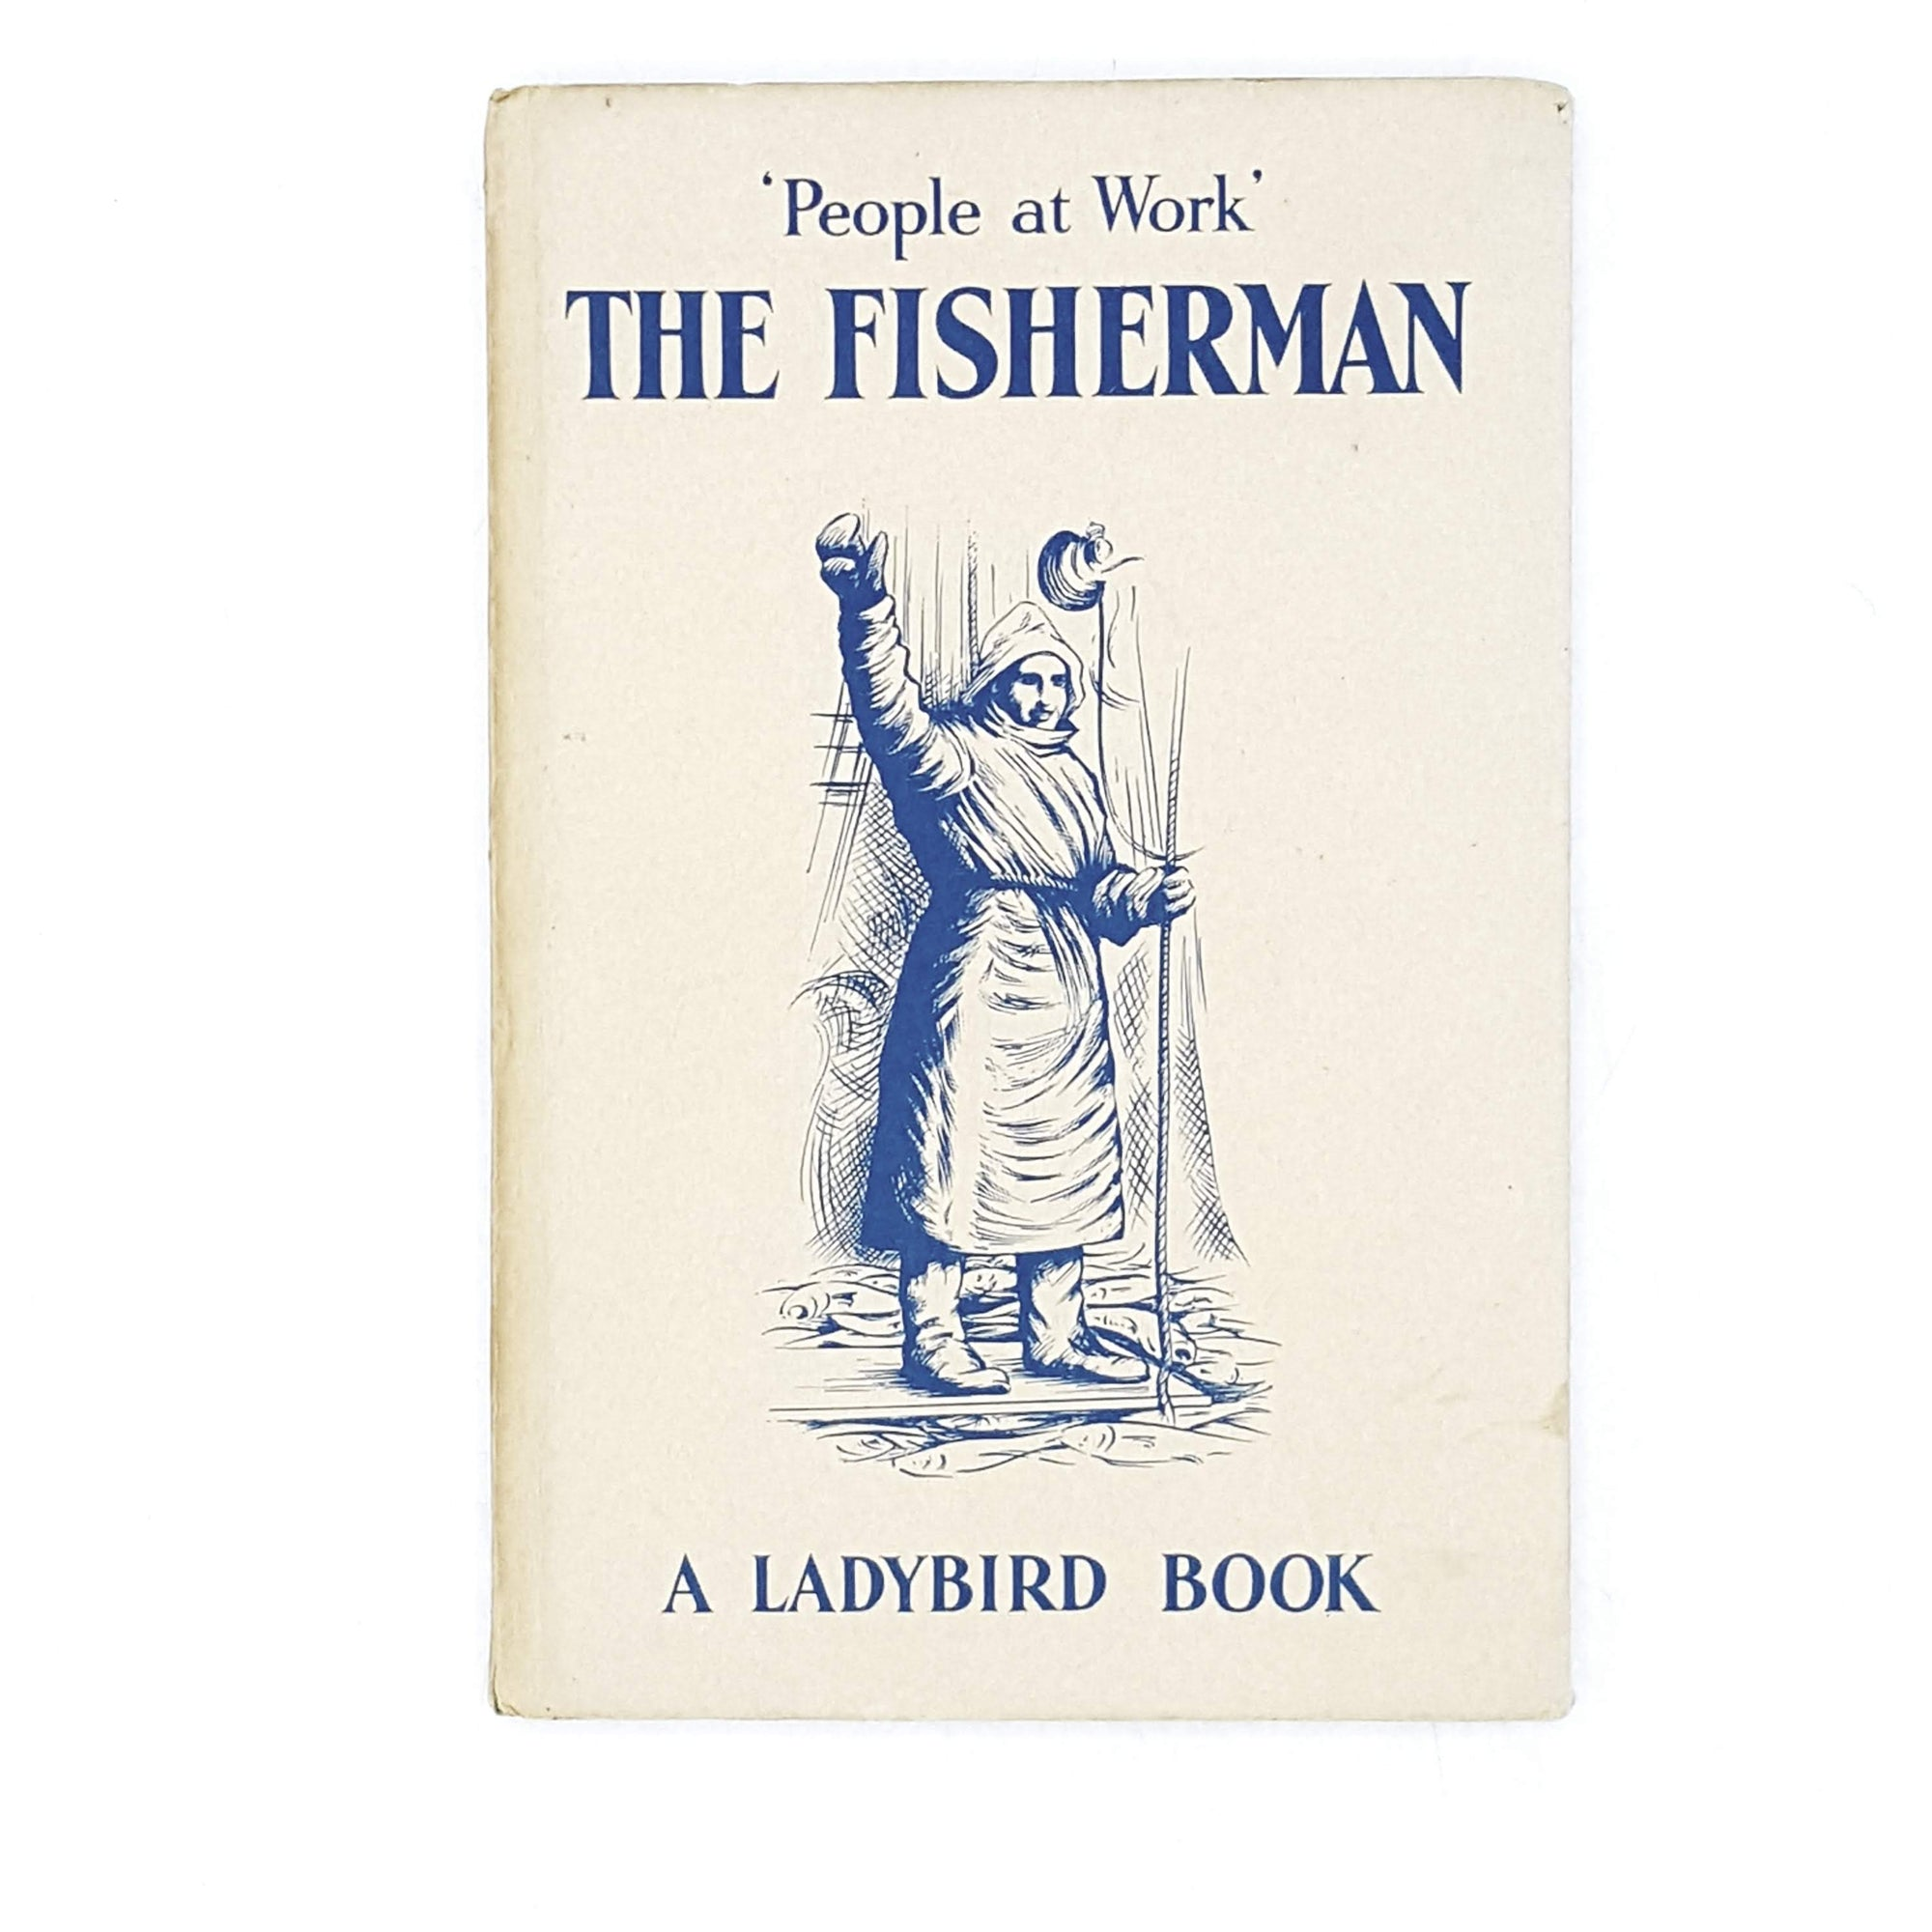 Vintage Ladybird: The Fisherman 1963